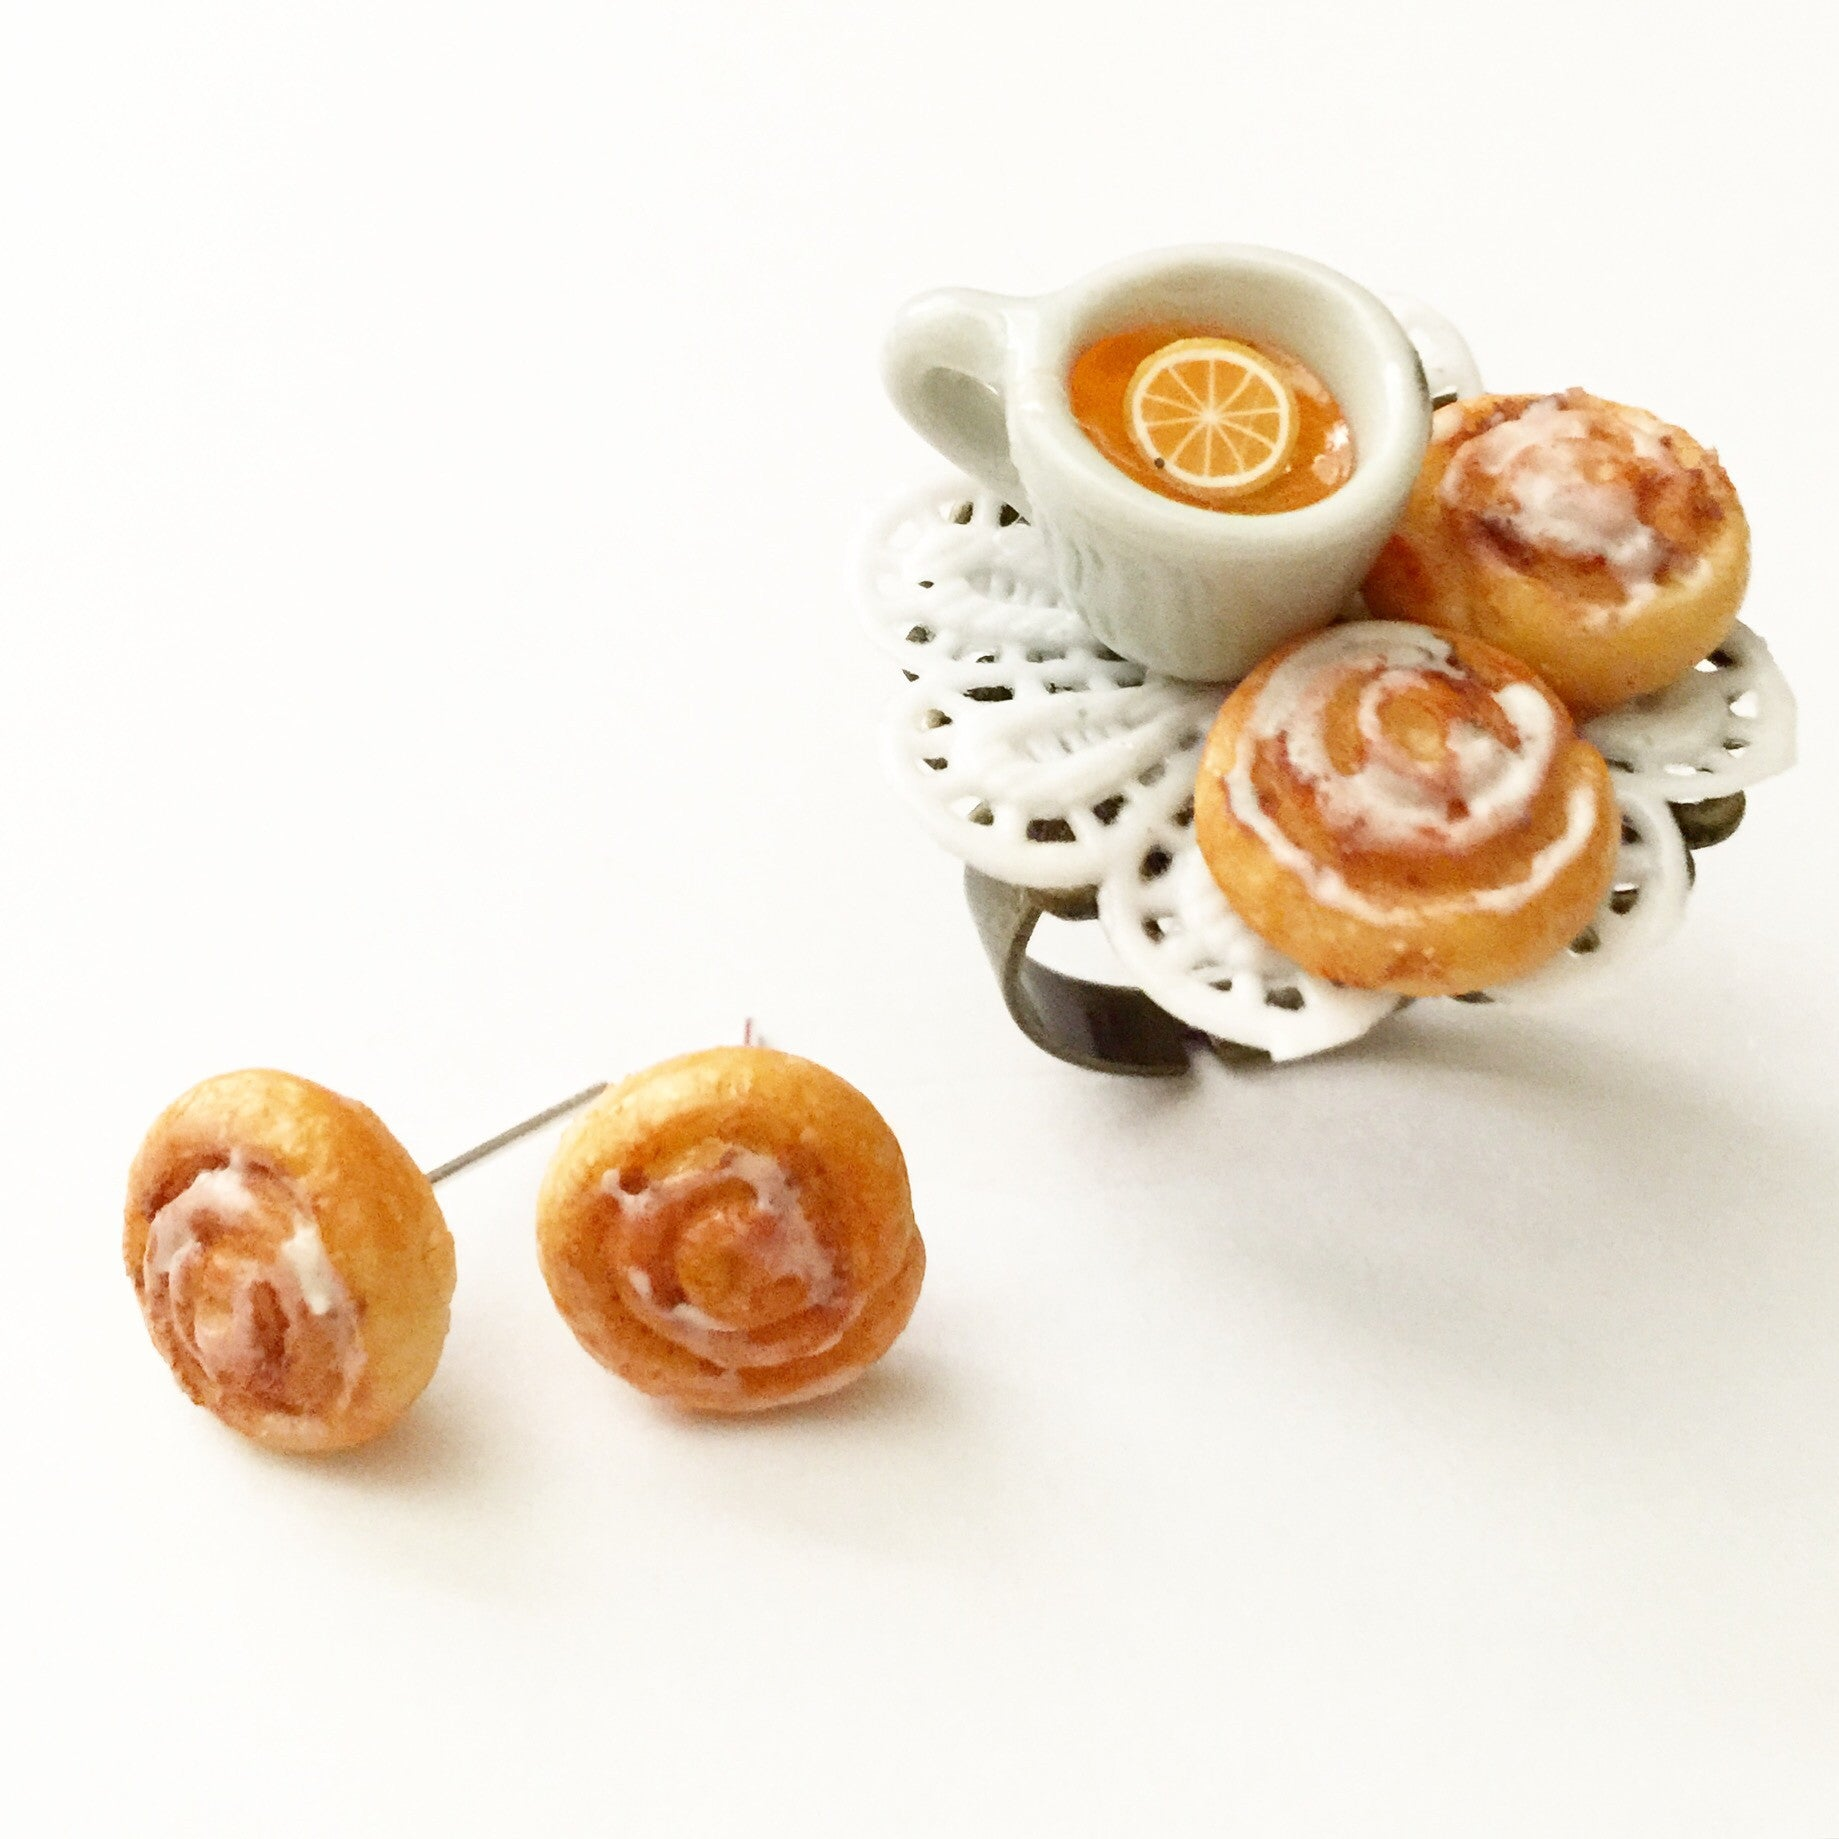 cinnamon rolls and tea ring - Jillicious charms and accessories